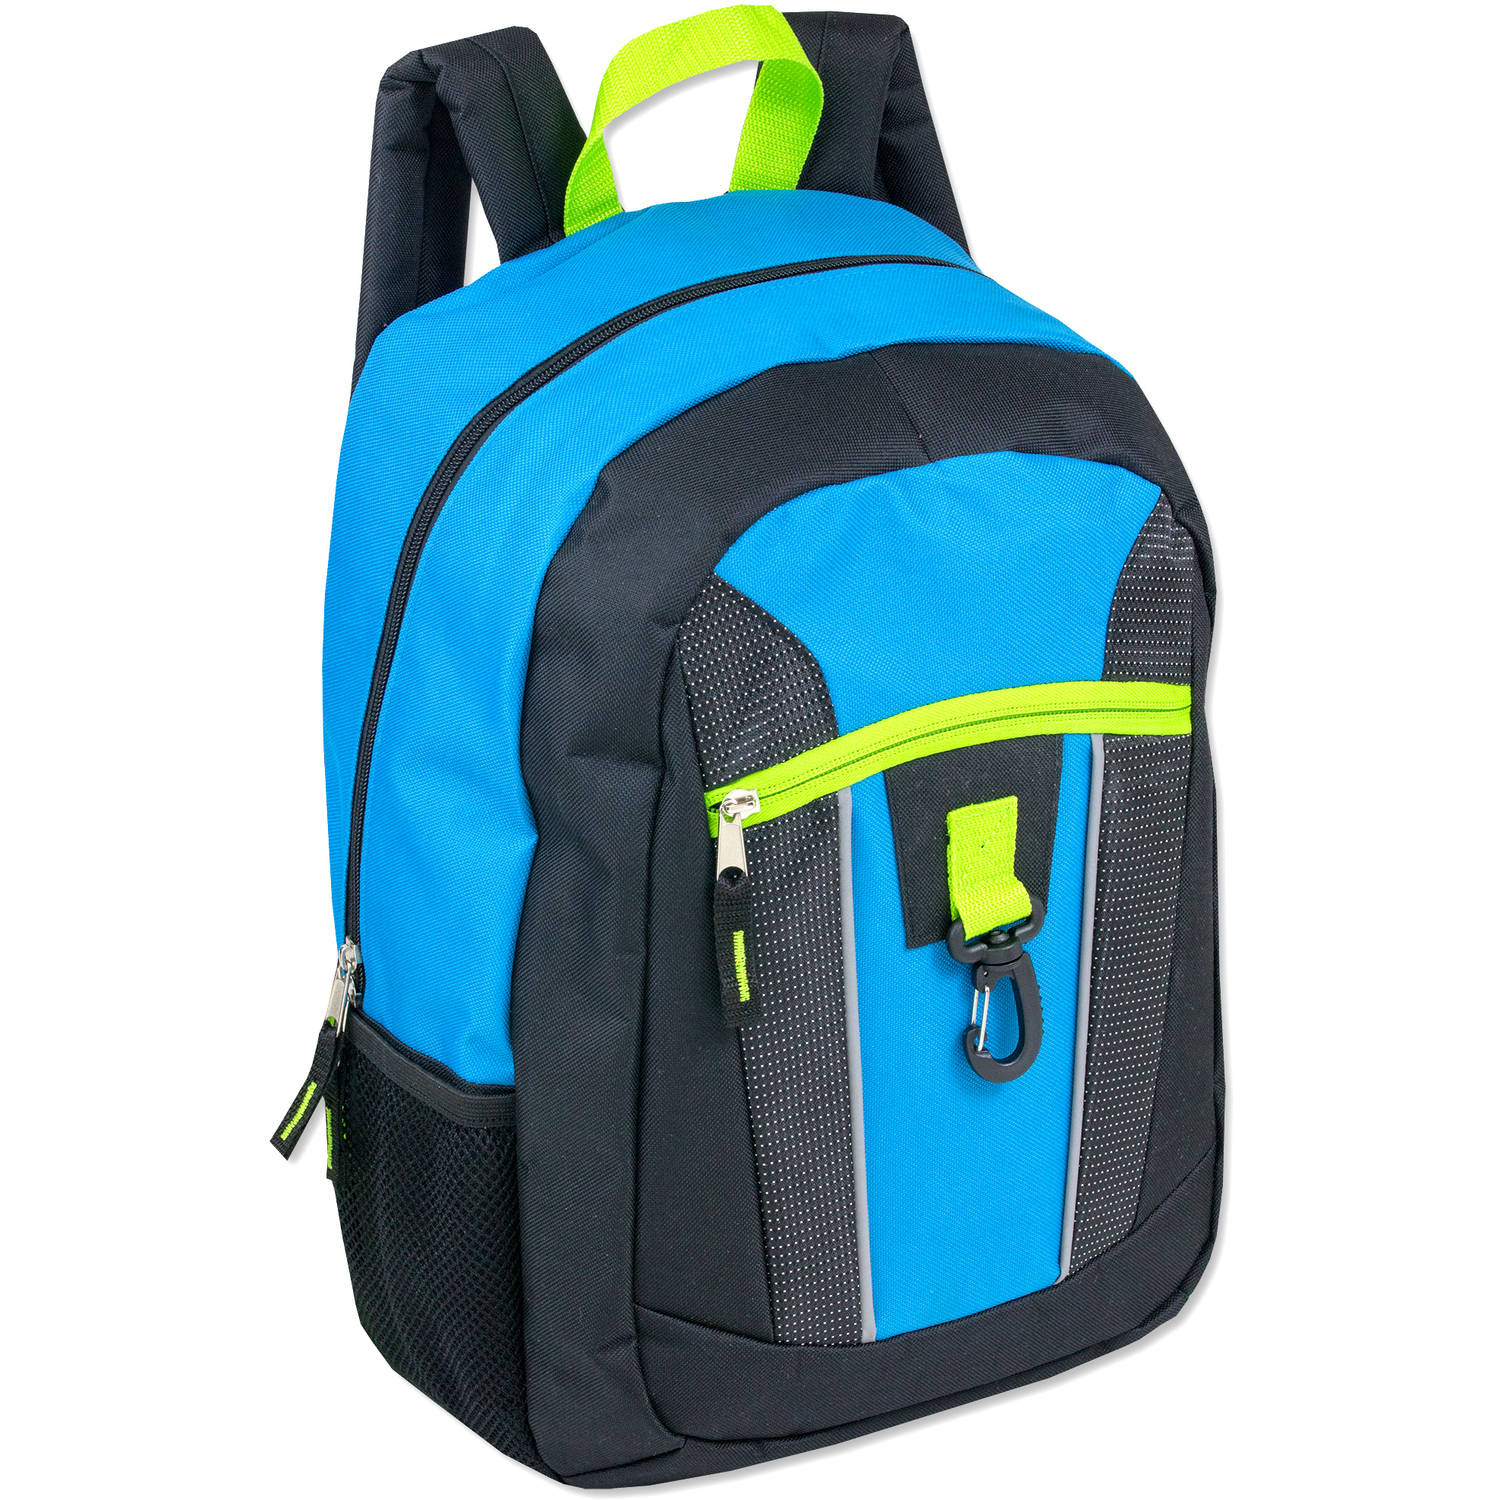 17 Inch Carabineer Backpack